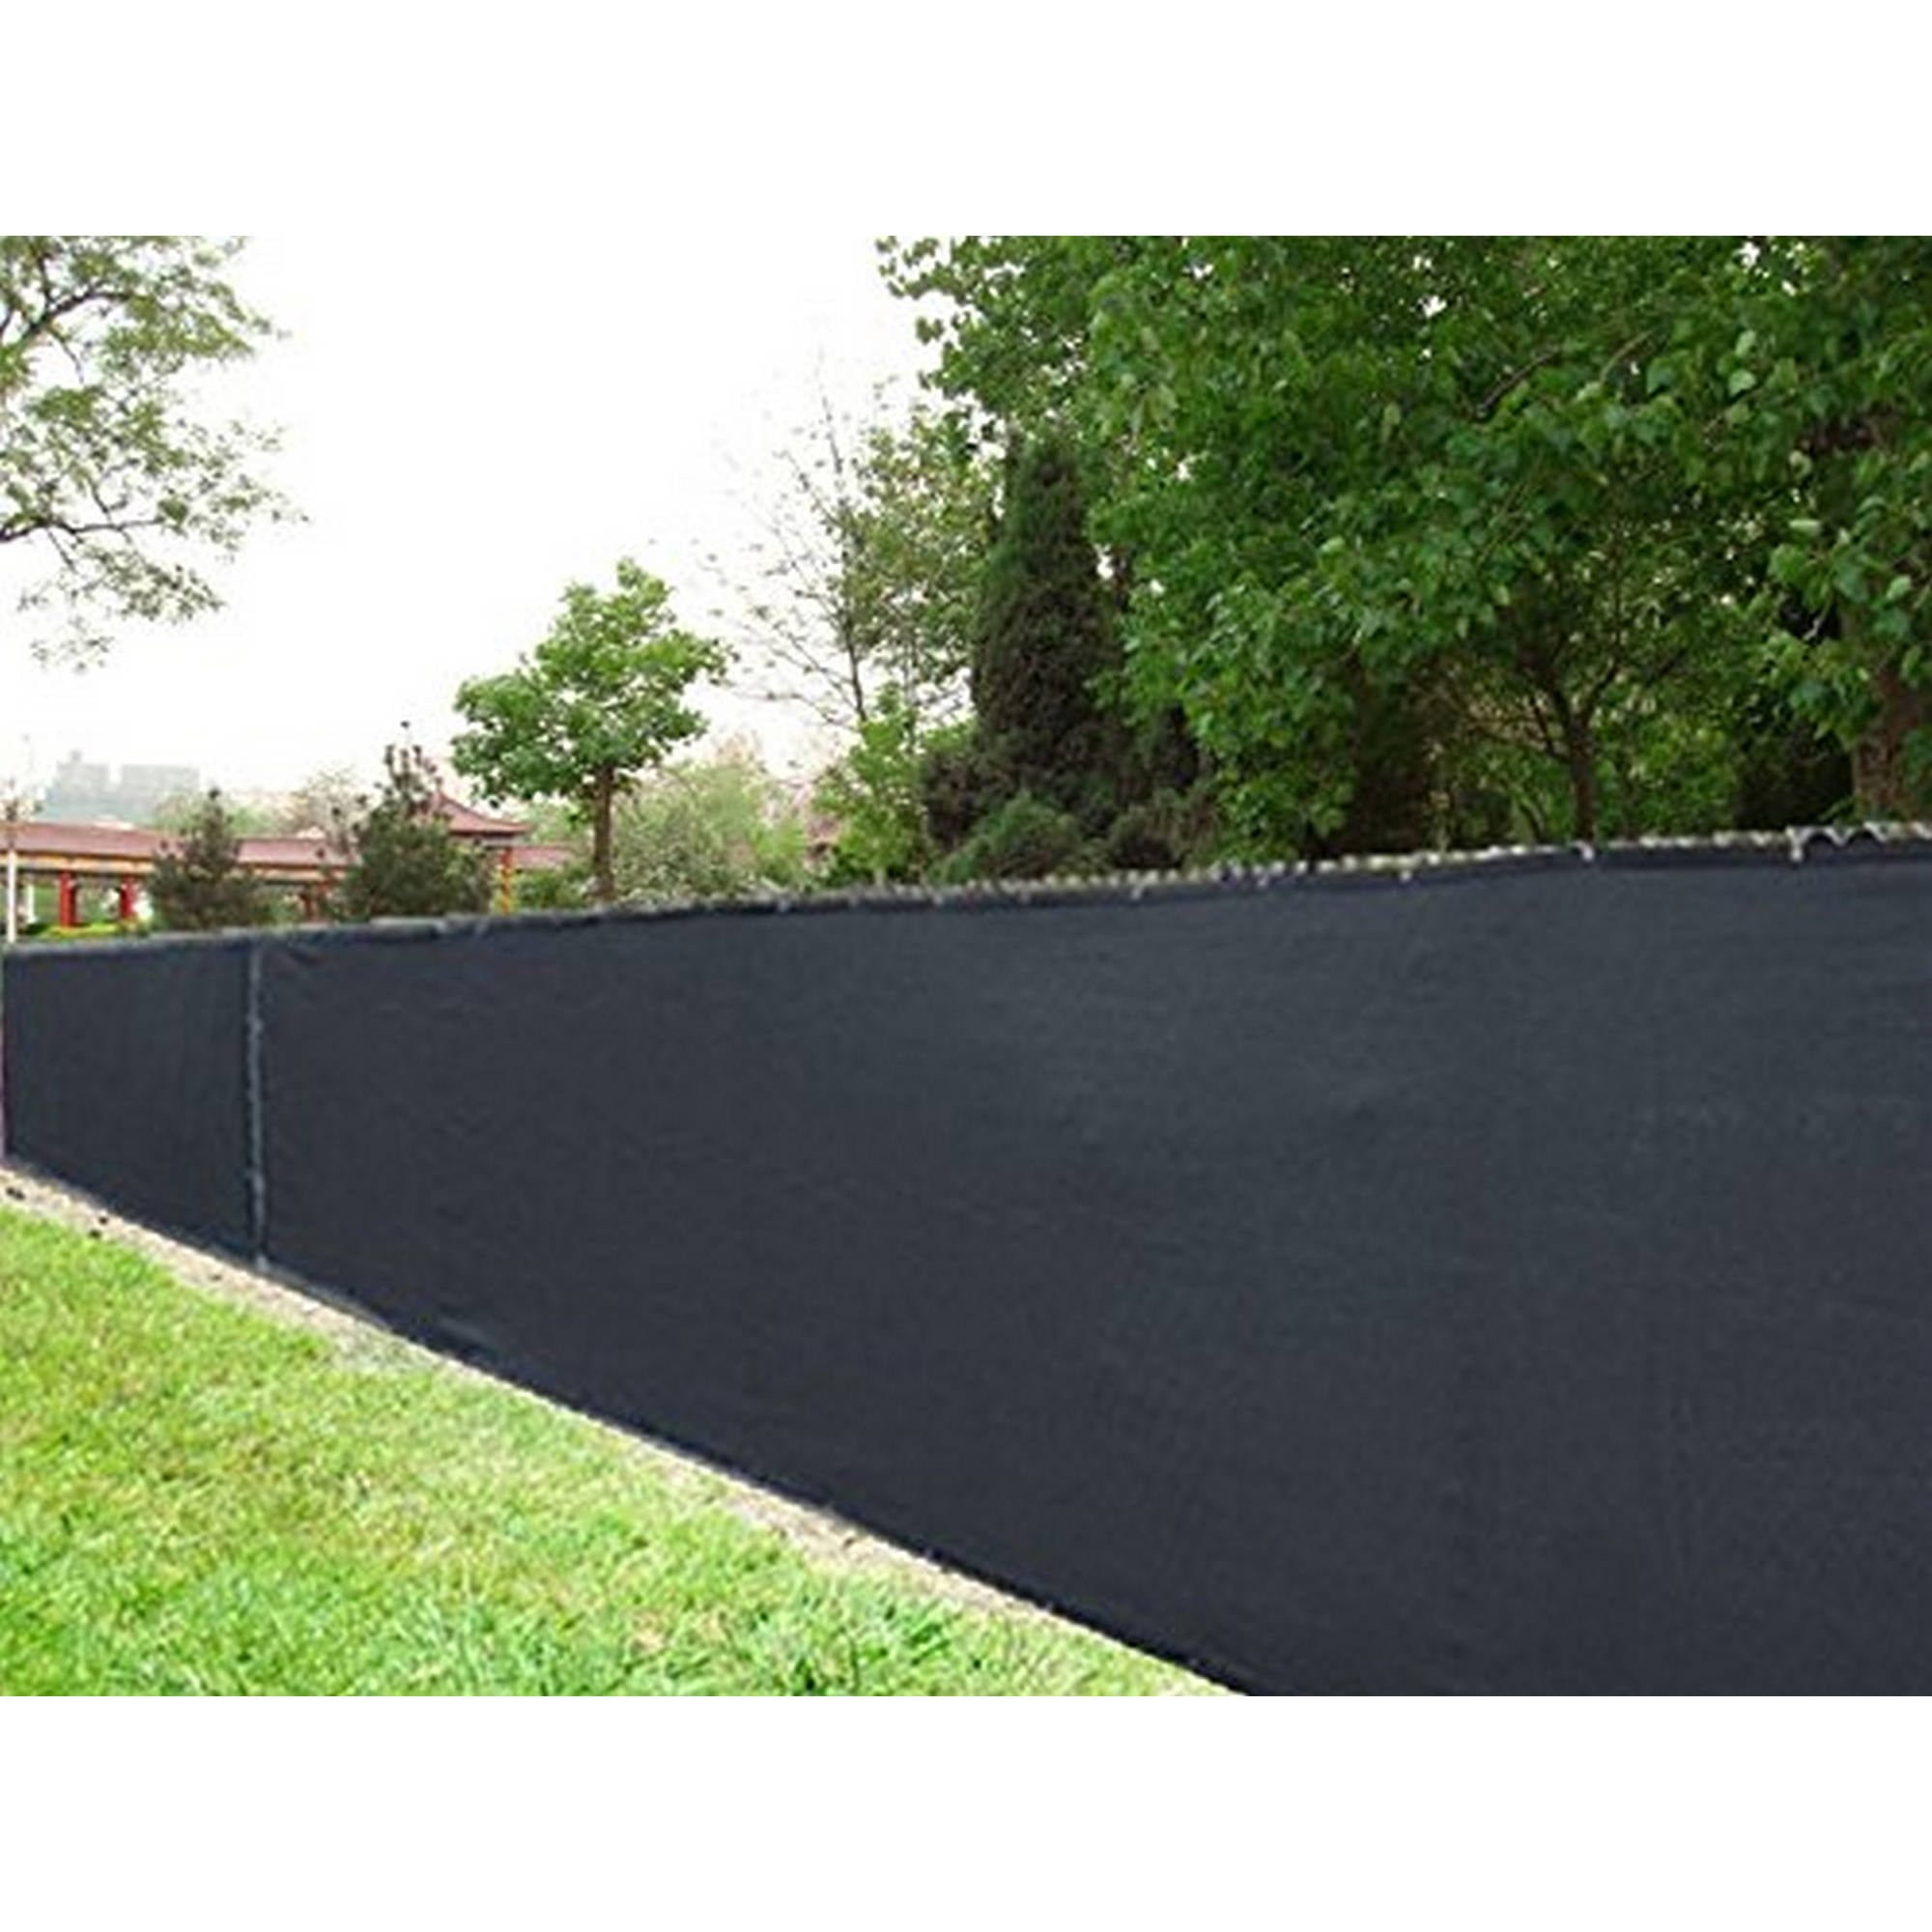 Aleko 6u0027 X 150u0027 (Aluminum Eye) Black Fence Privacy Screen Outdoor Backyard